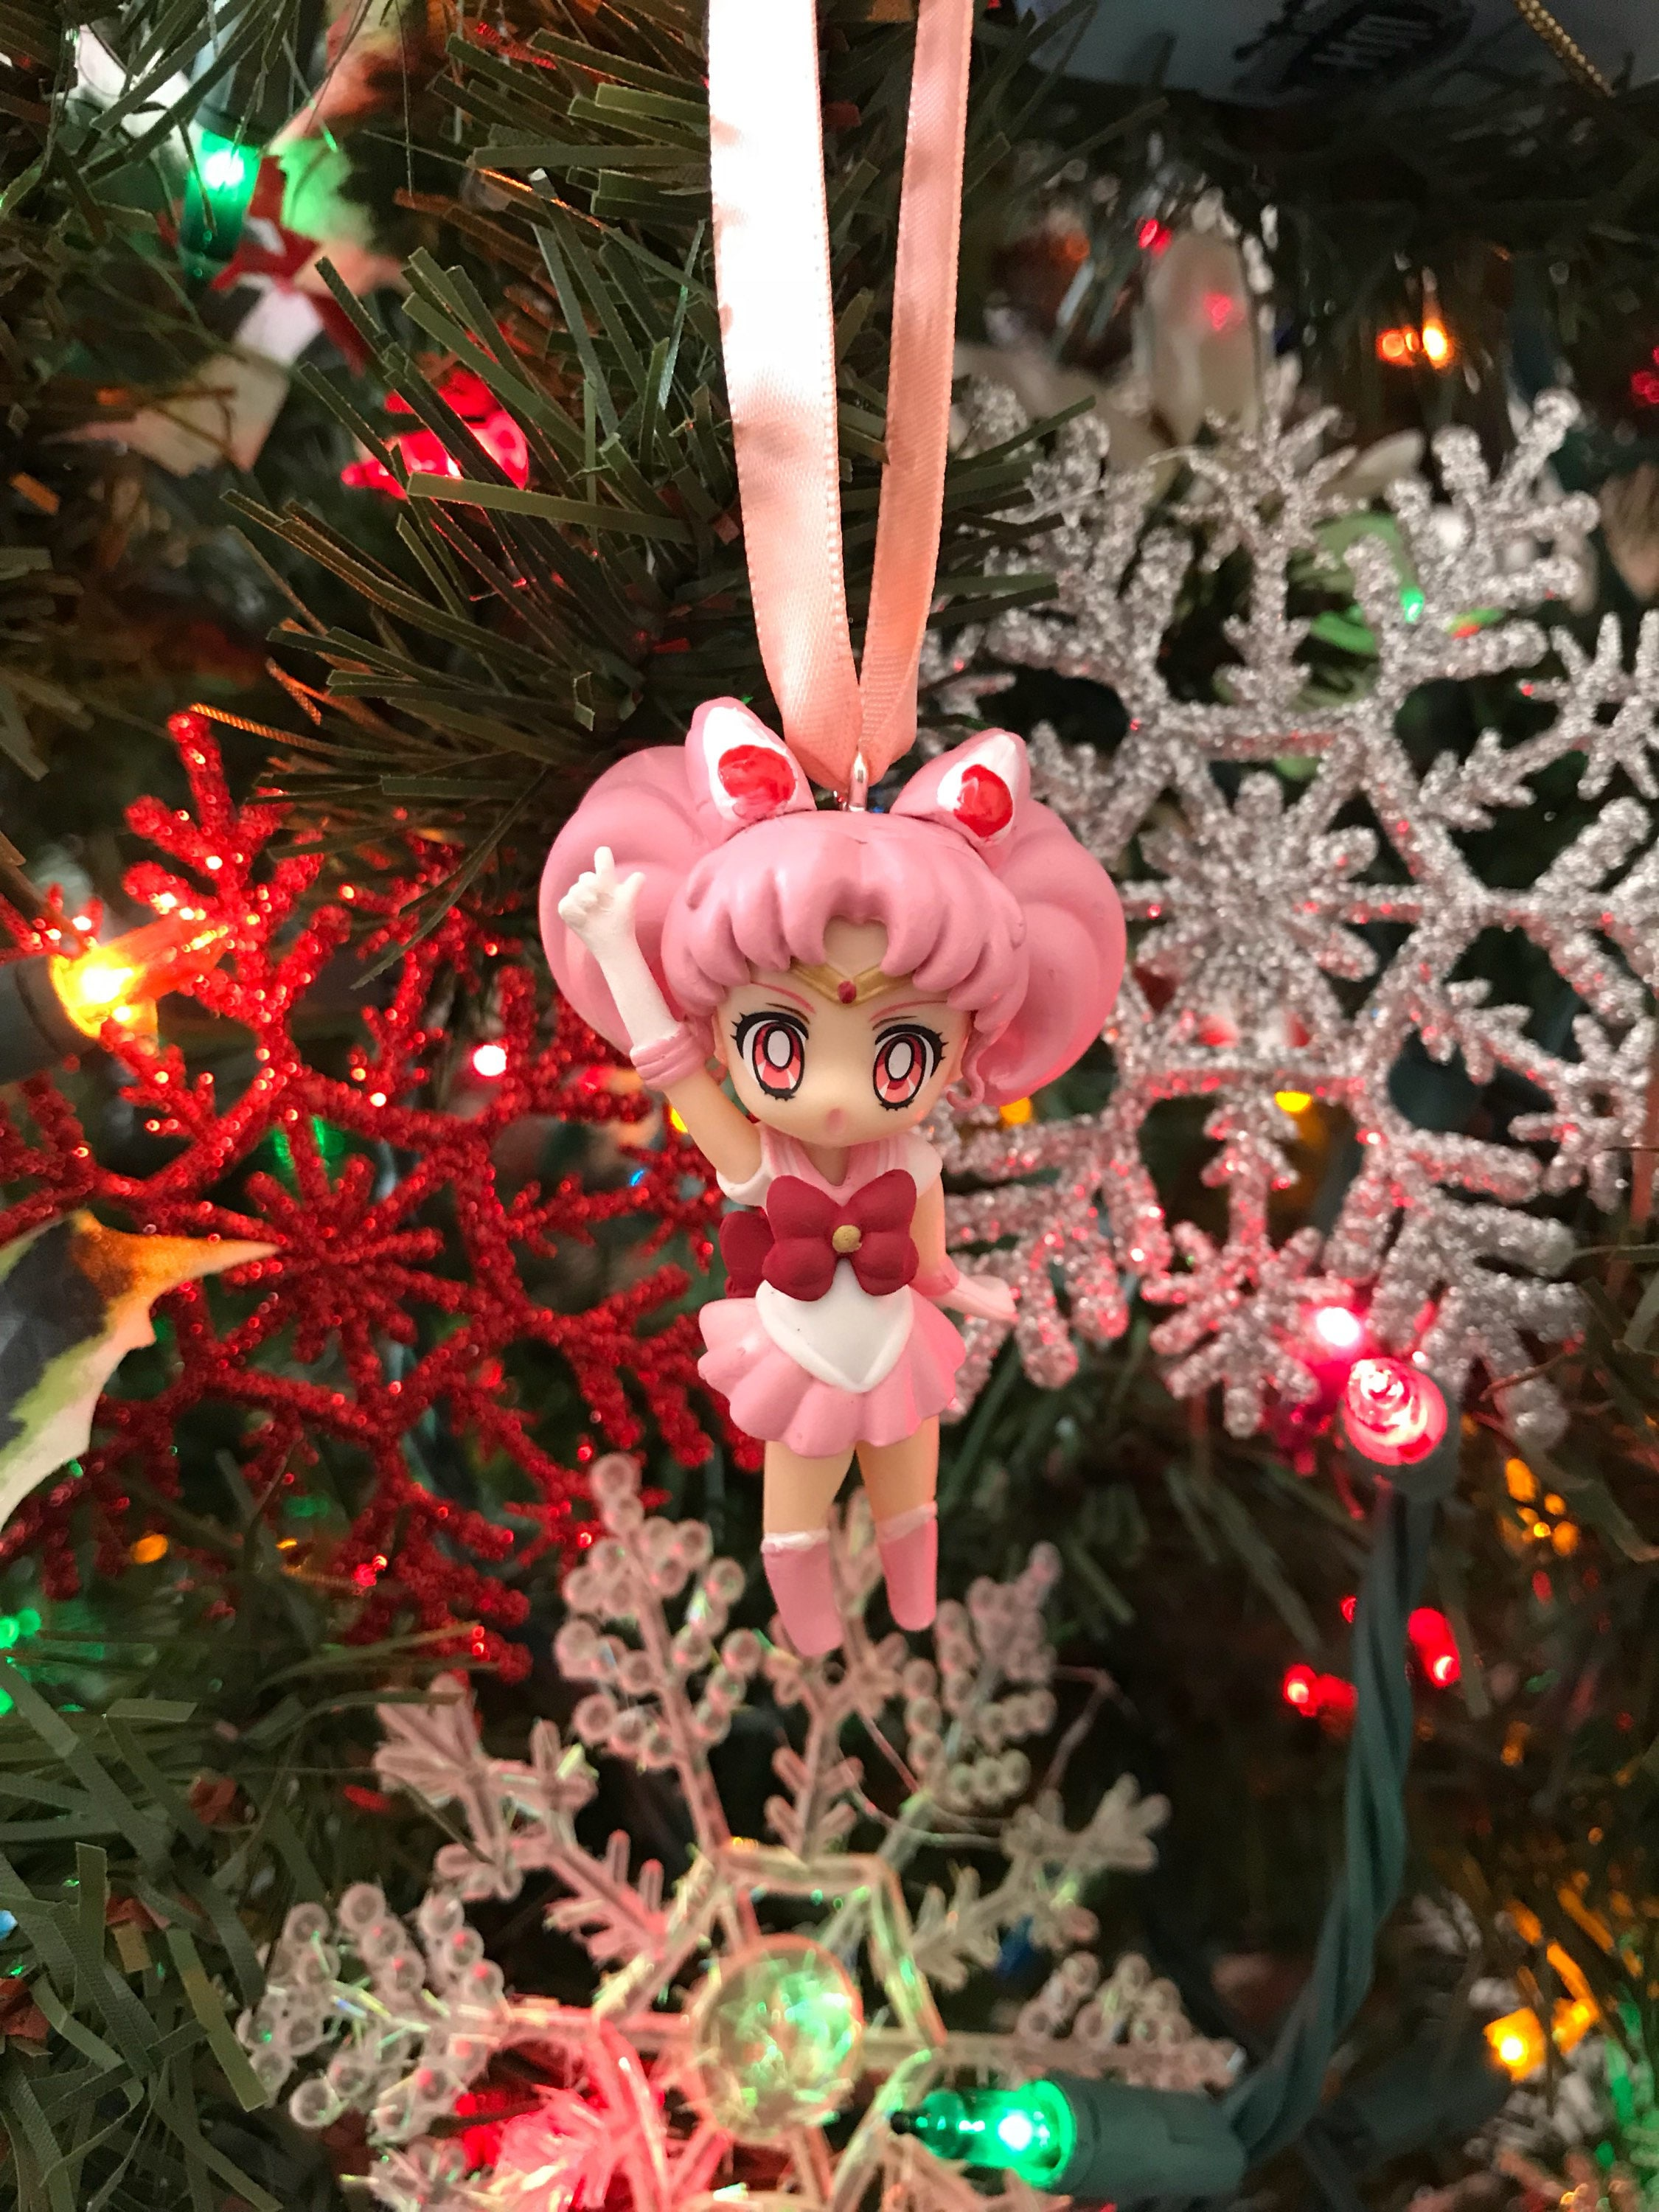 Sailor Chibi Moon aus Sailor Moon Urlaub Weihnachten Ornament | Etsy